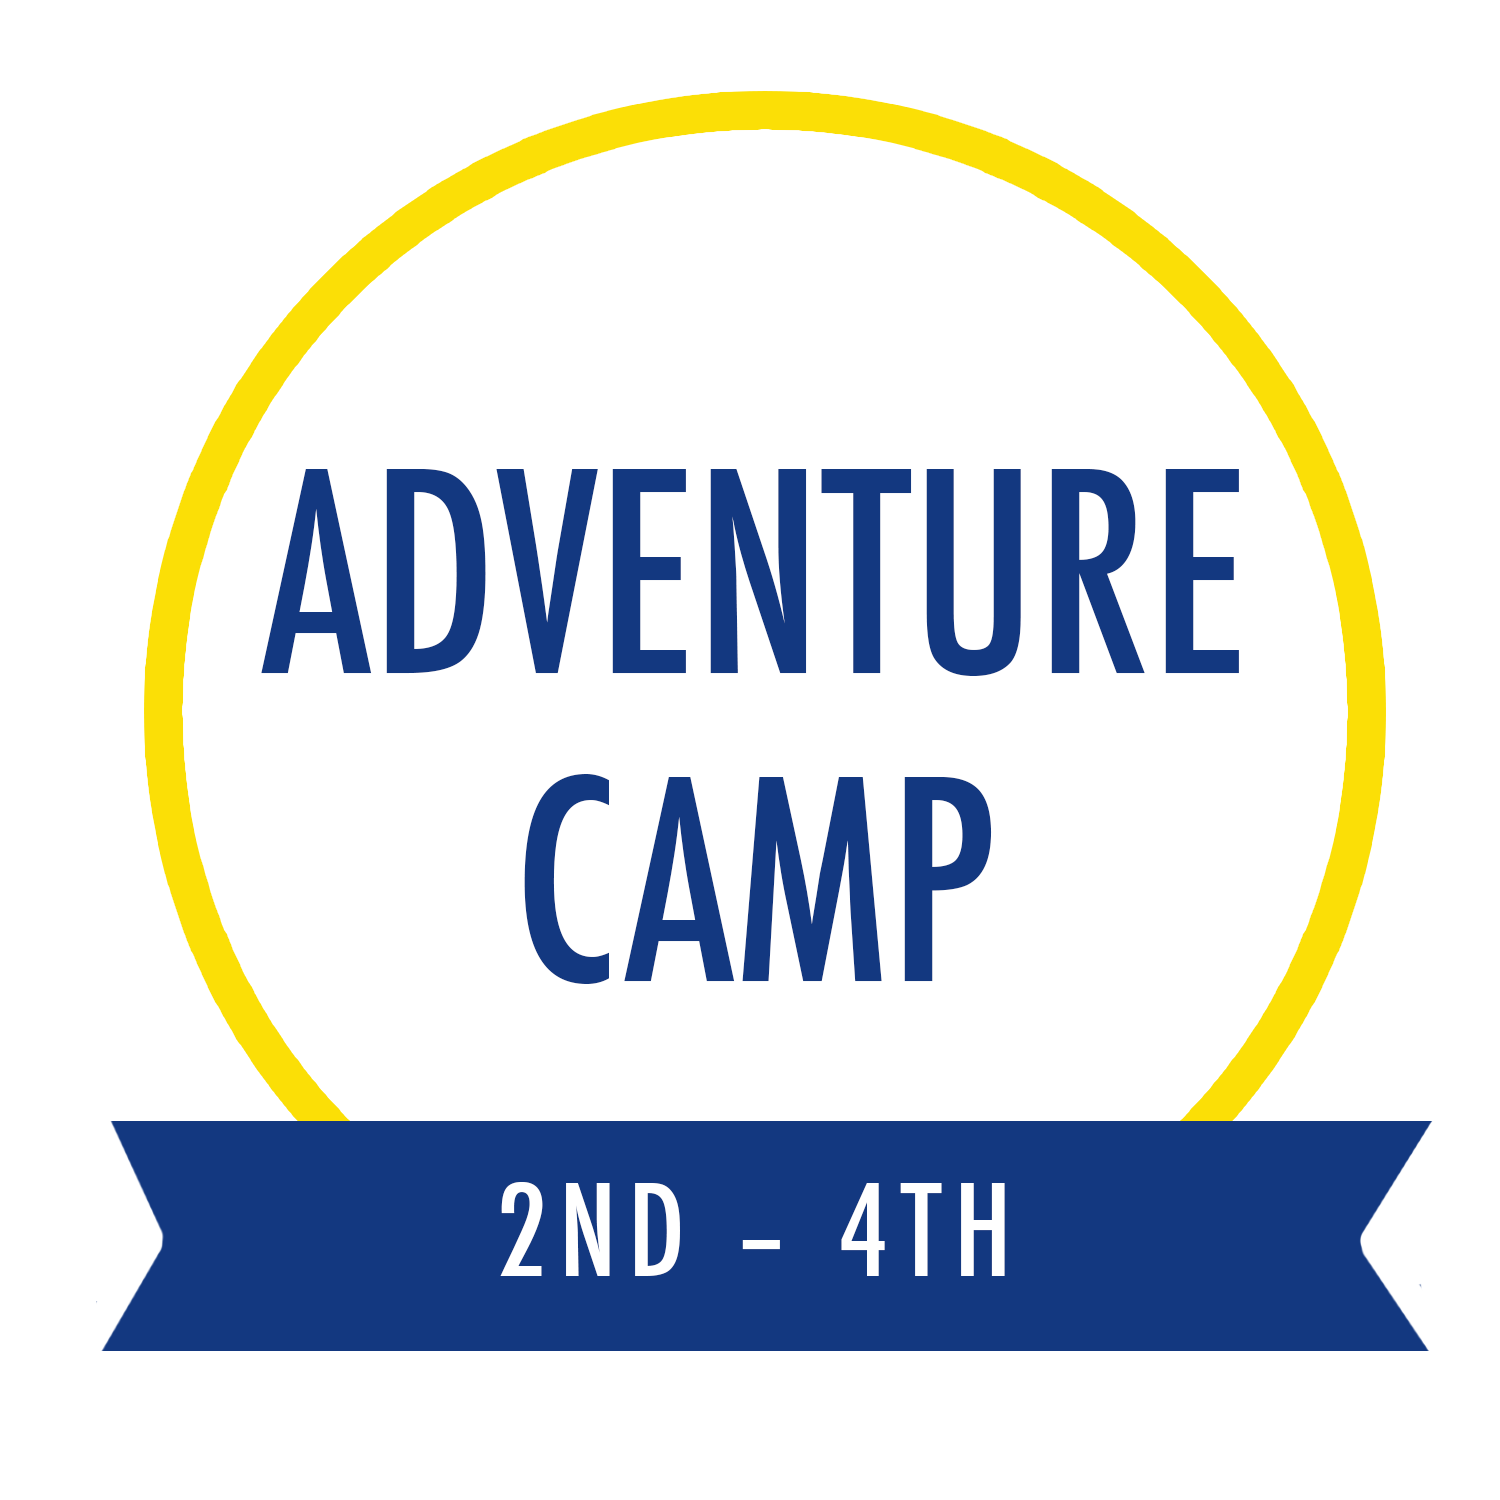 Adventure Camp (2nd-4th)